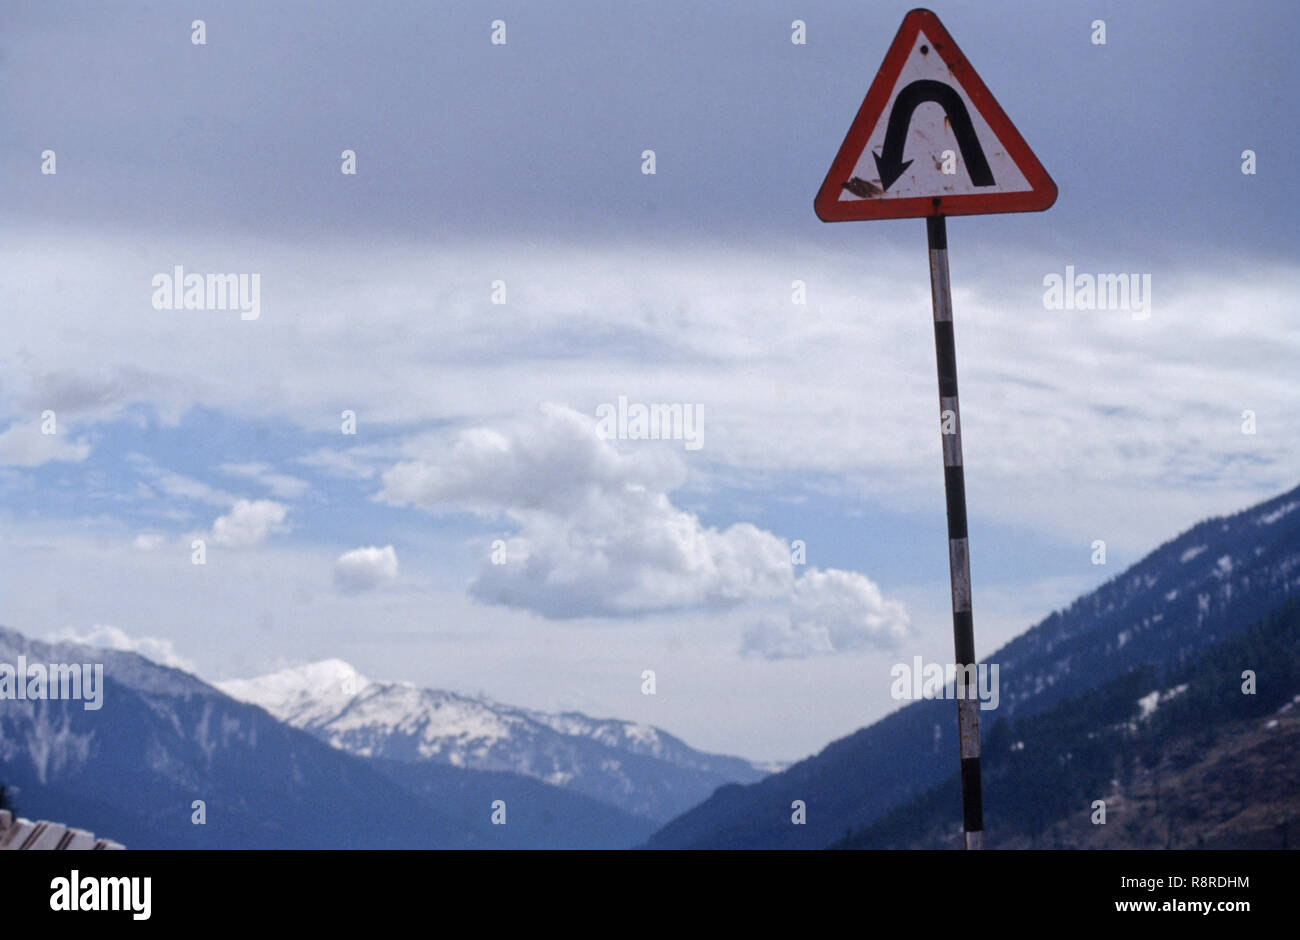 U Turn, Manali, Himachal Pradesh, India - Stock Image